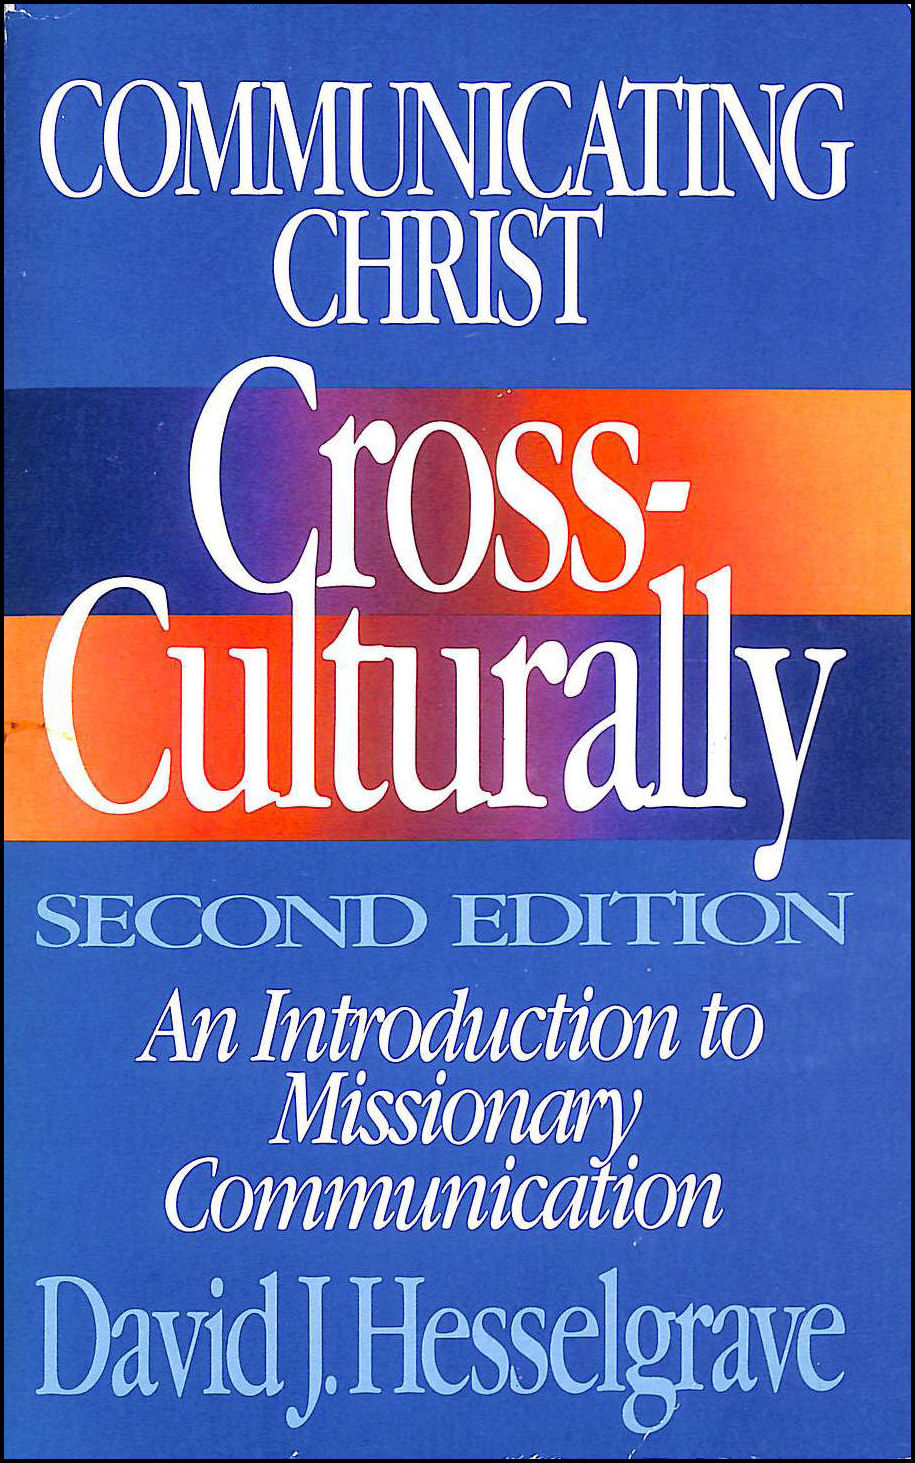 Communicating Christ Cross Culturally: An Introduction To Missionary Communication, Hesselgrave David